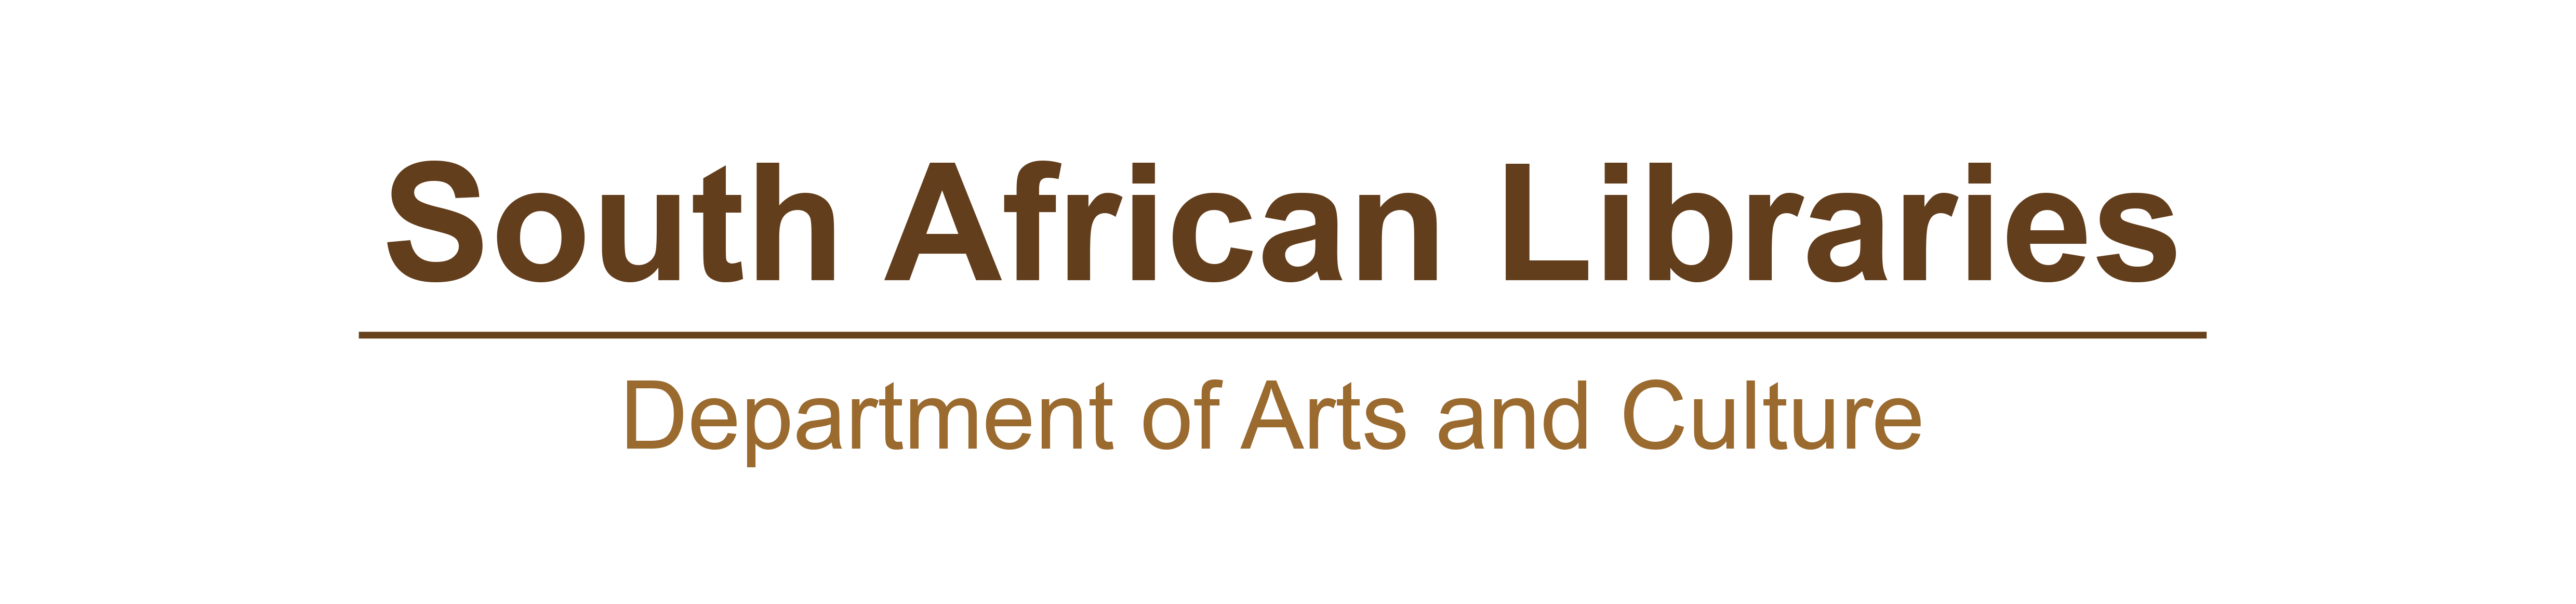 South African Libraries Logo..